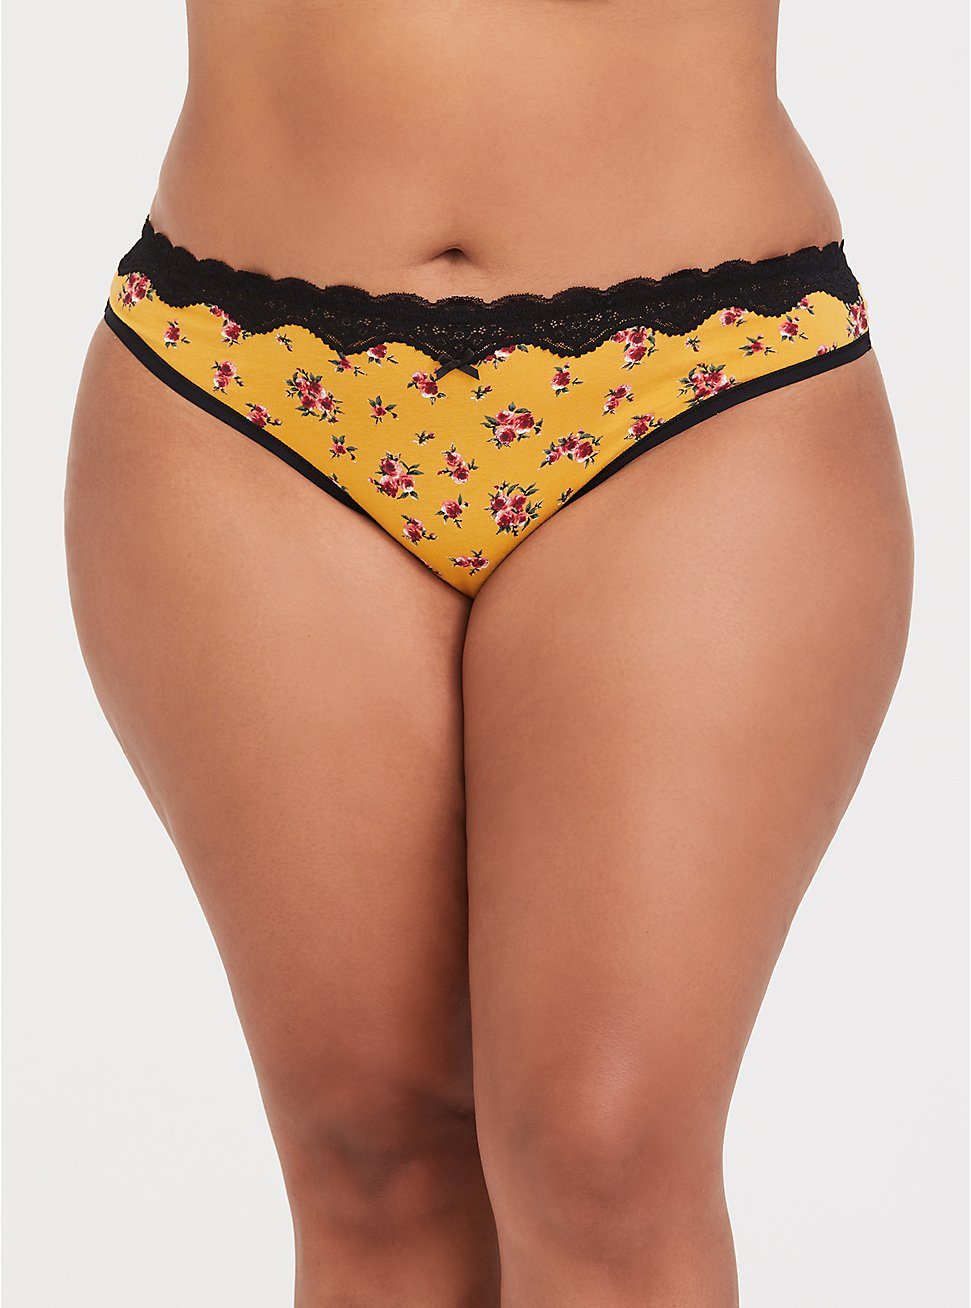 Plus Size Mustard Yellow Floral & Black Lace Cotton Thong Panty, FLORAL - YELLOW, hi-res